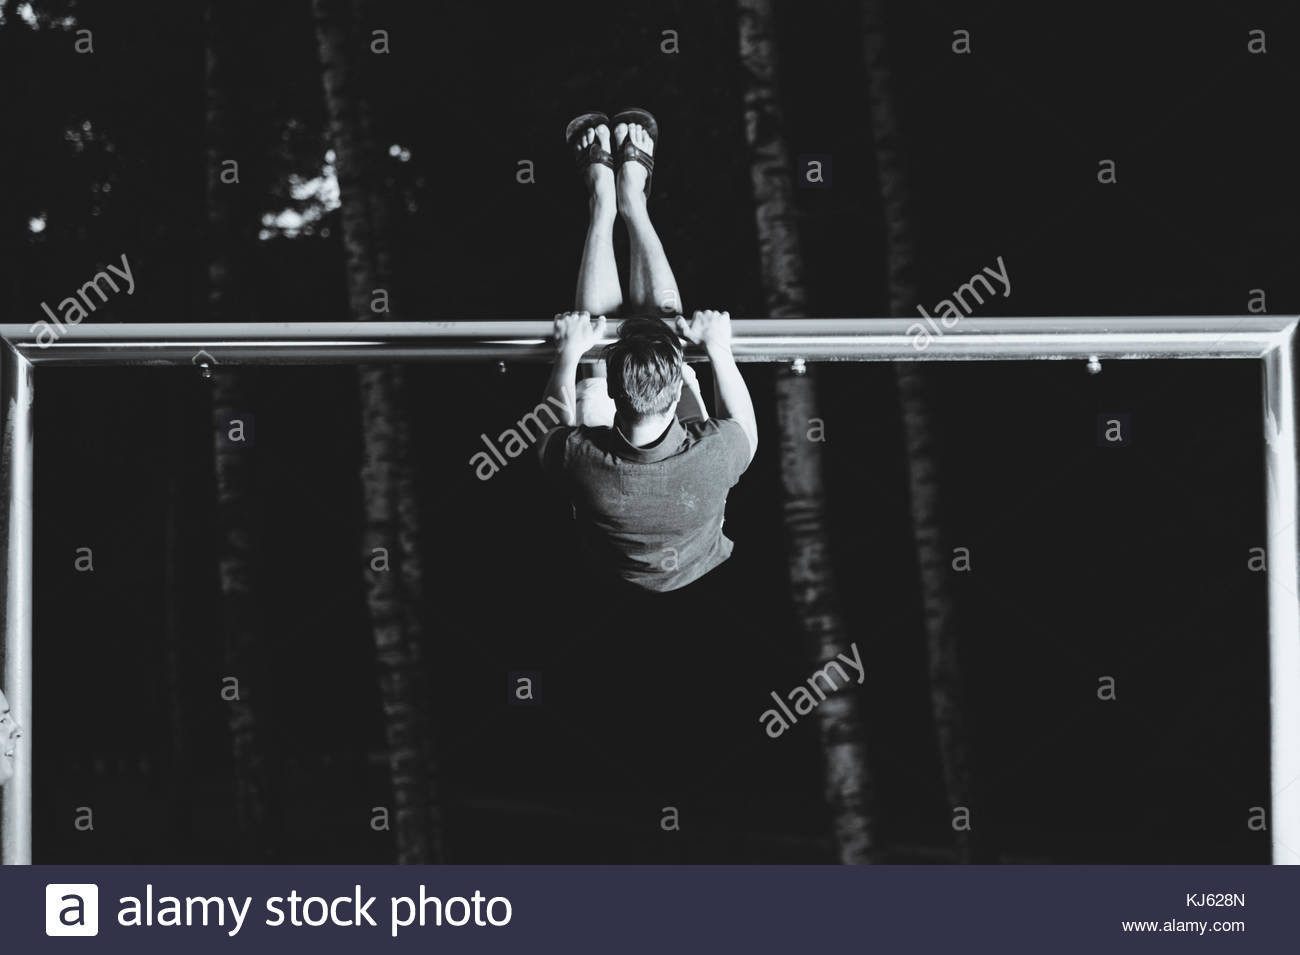 Man exercising on the parallel bars - Stock Image